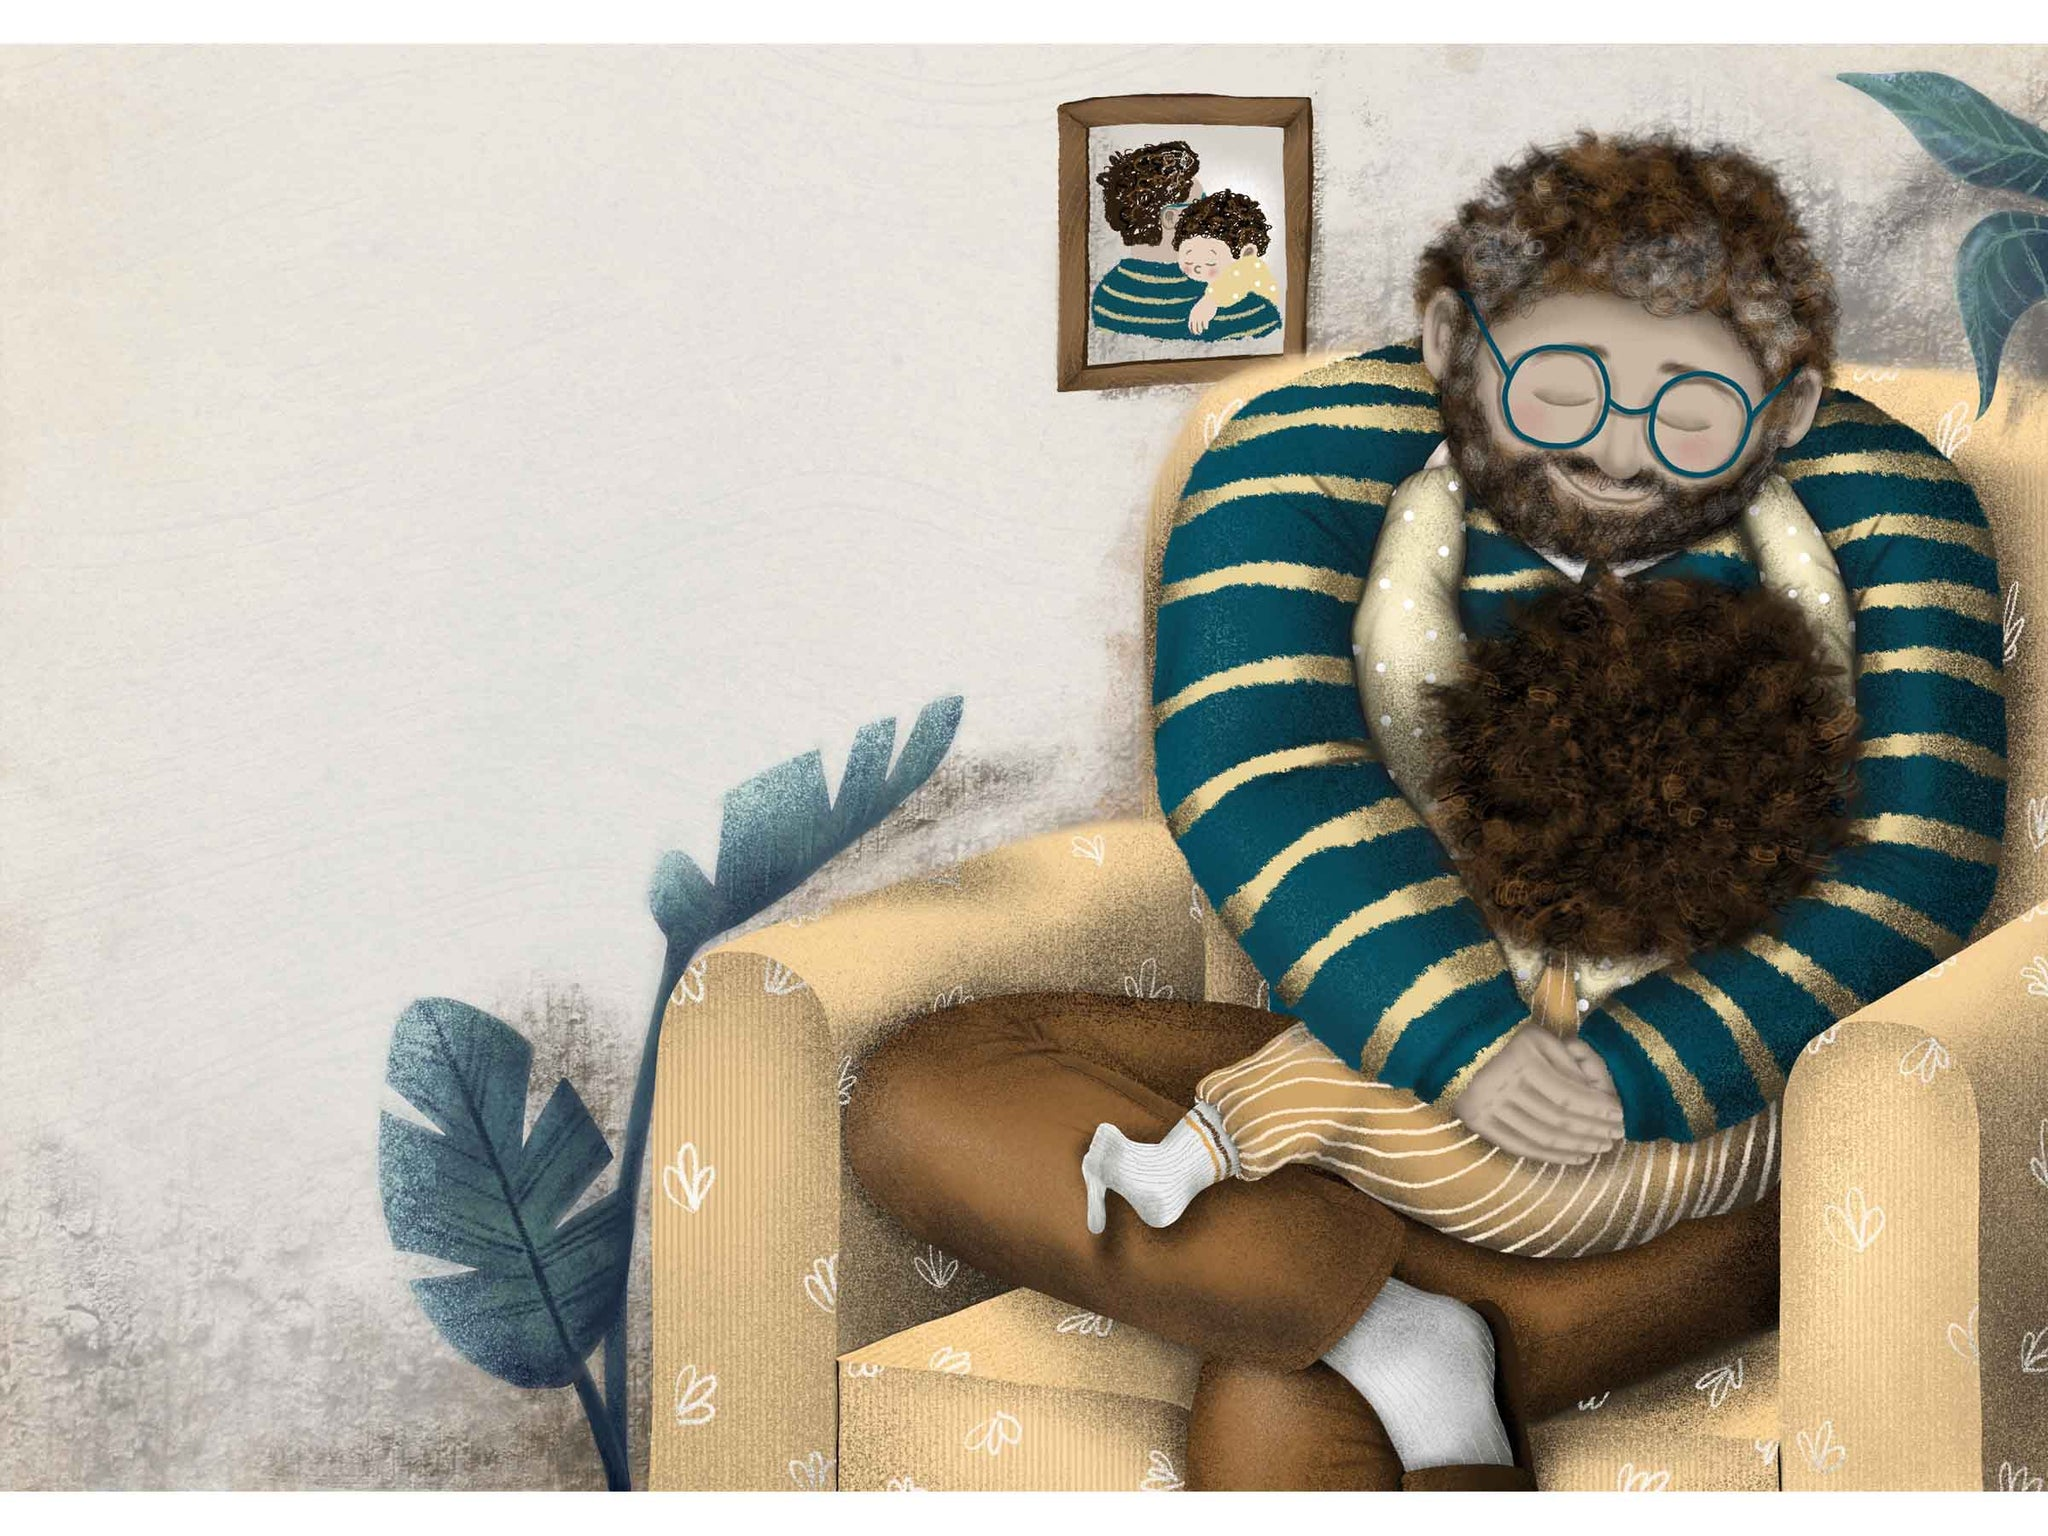 illustration for kids, dad hugging his little son, they're sitting in a chair, behind them is a photo of the two of them